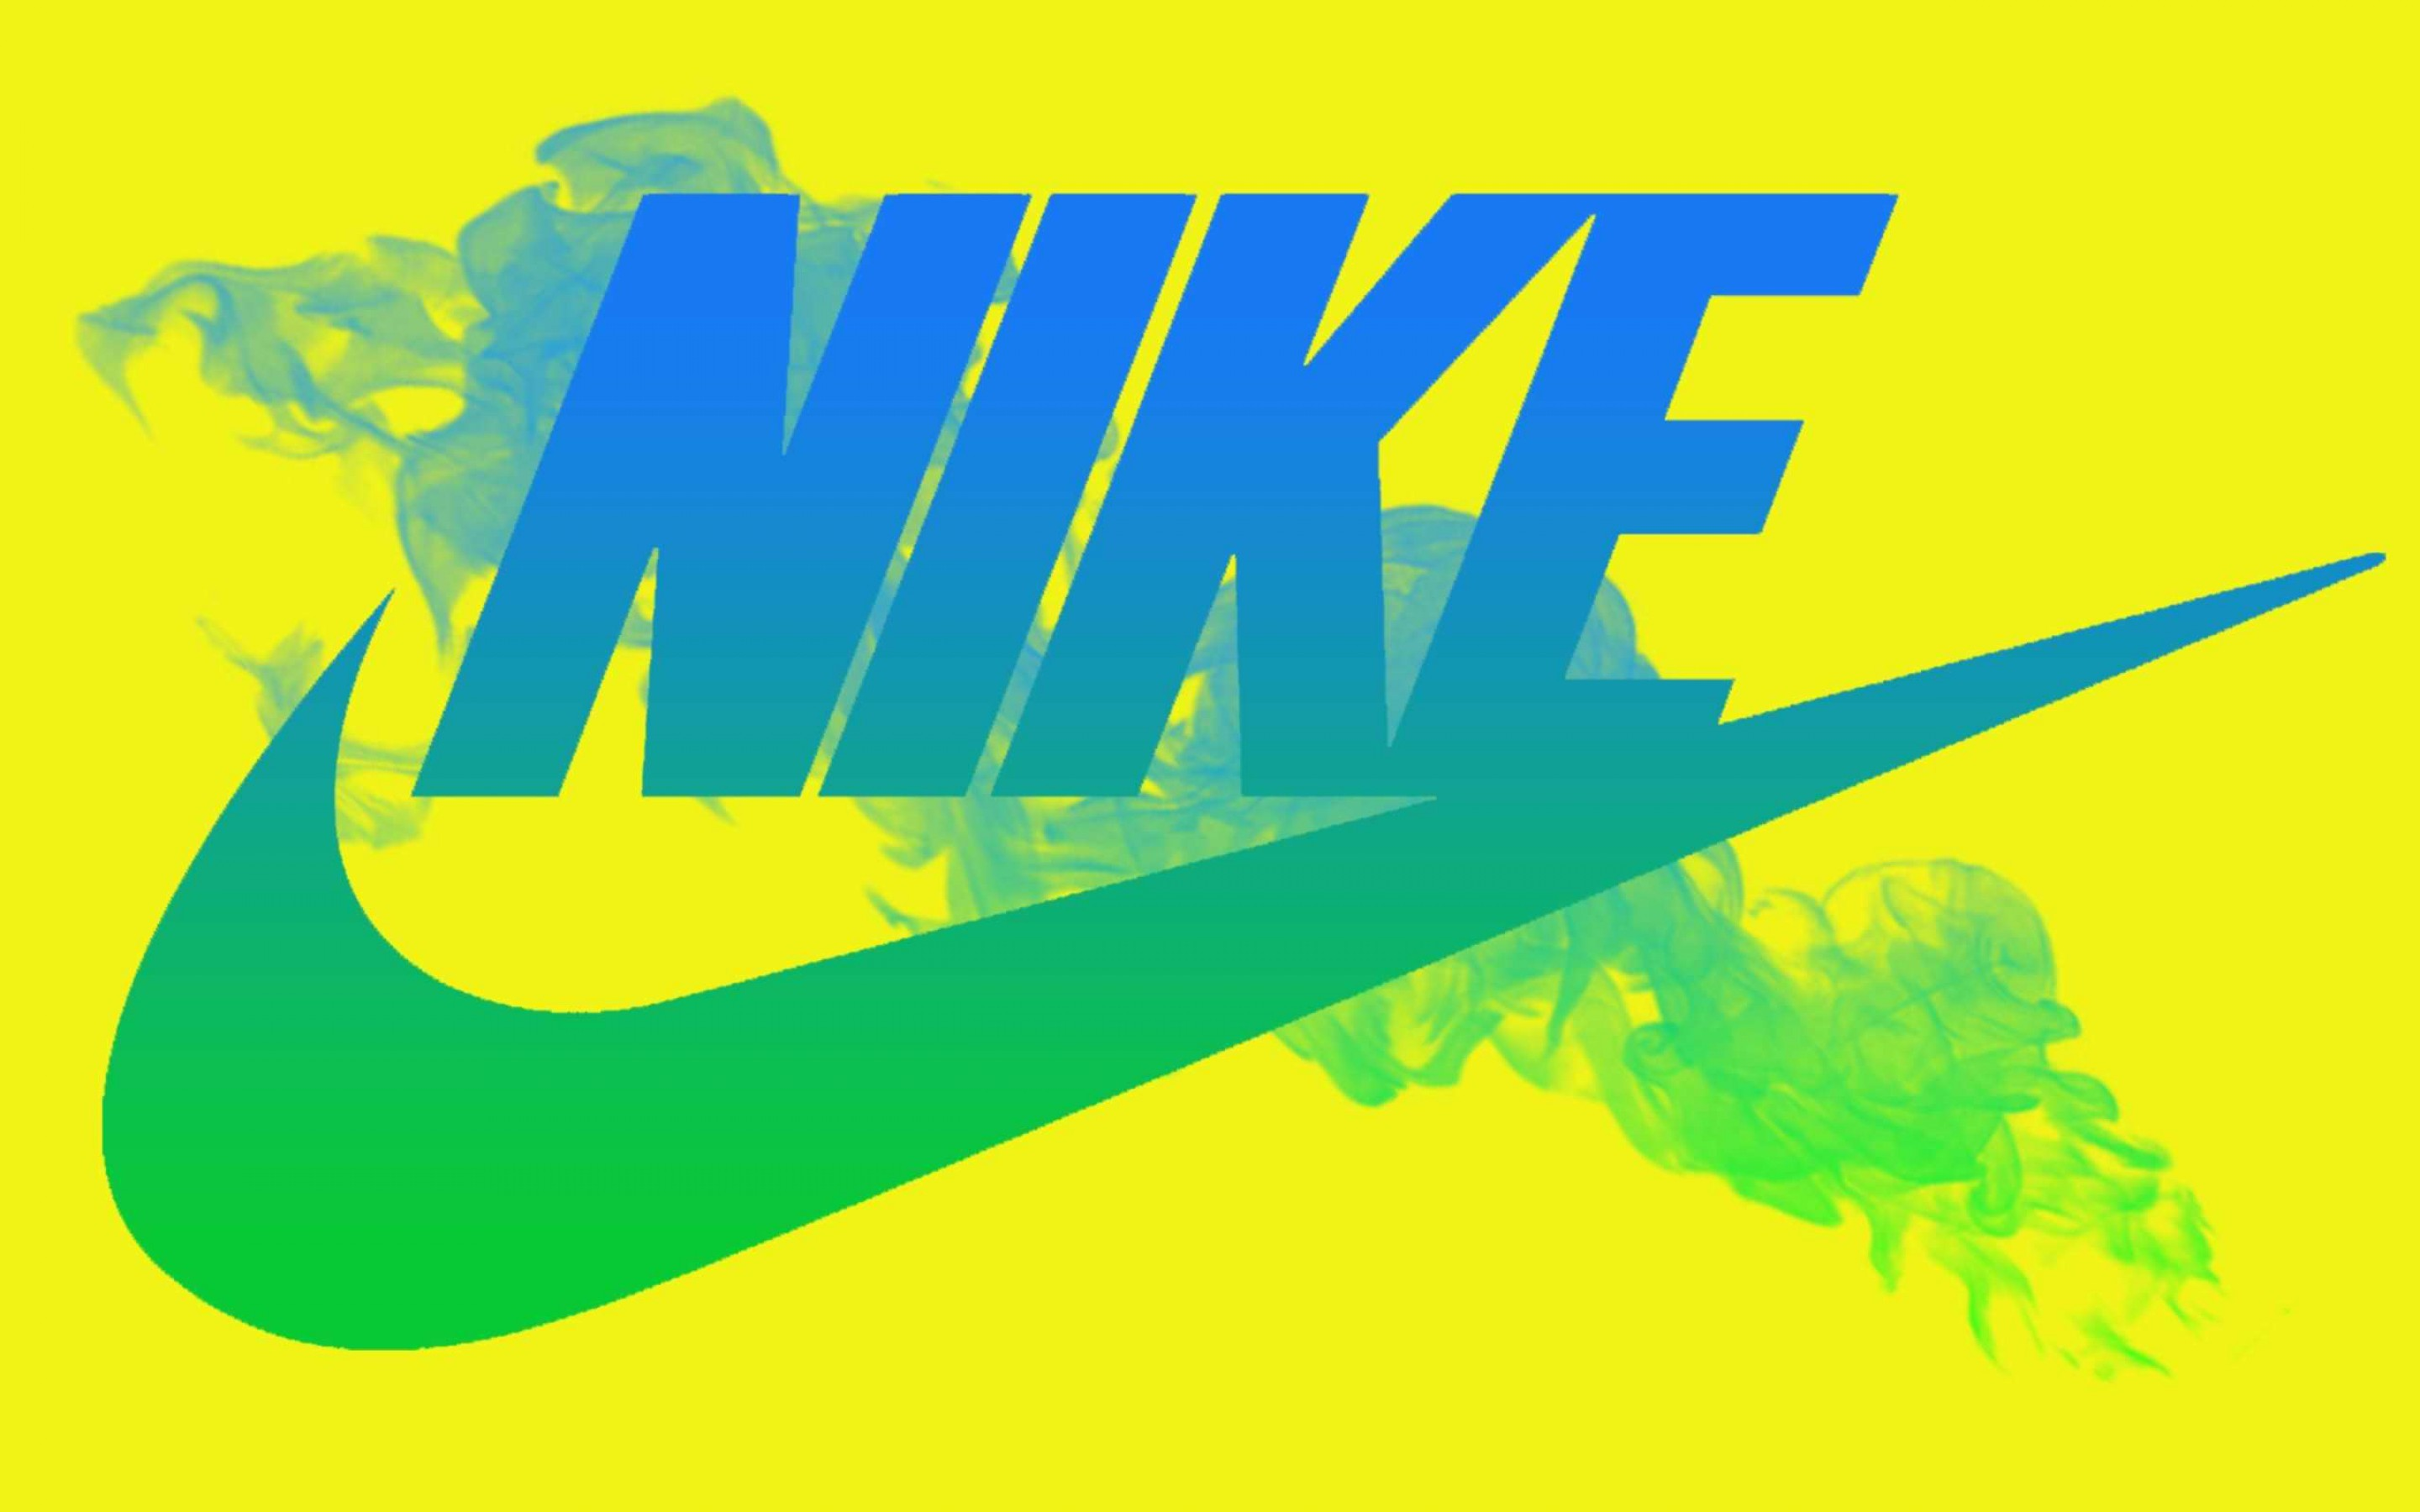 2880x1800 Blue Nike Logo Yellow Background Wallpaper Ful #6924 Wallpaper | High .